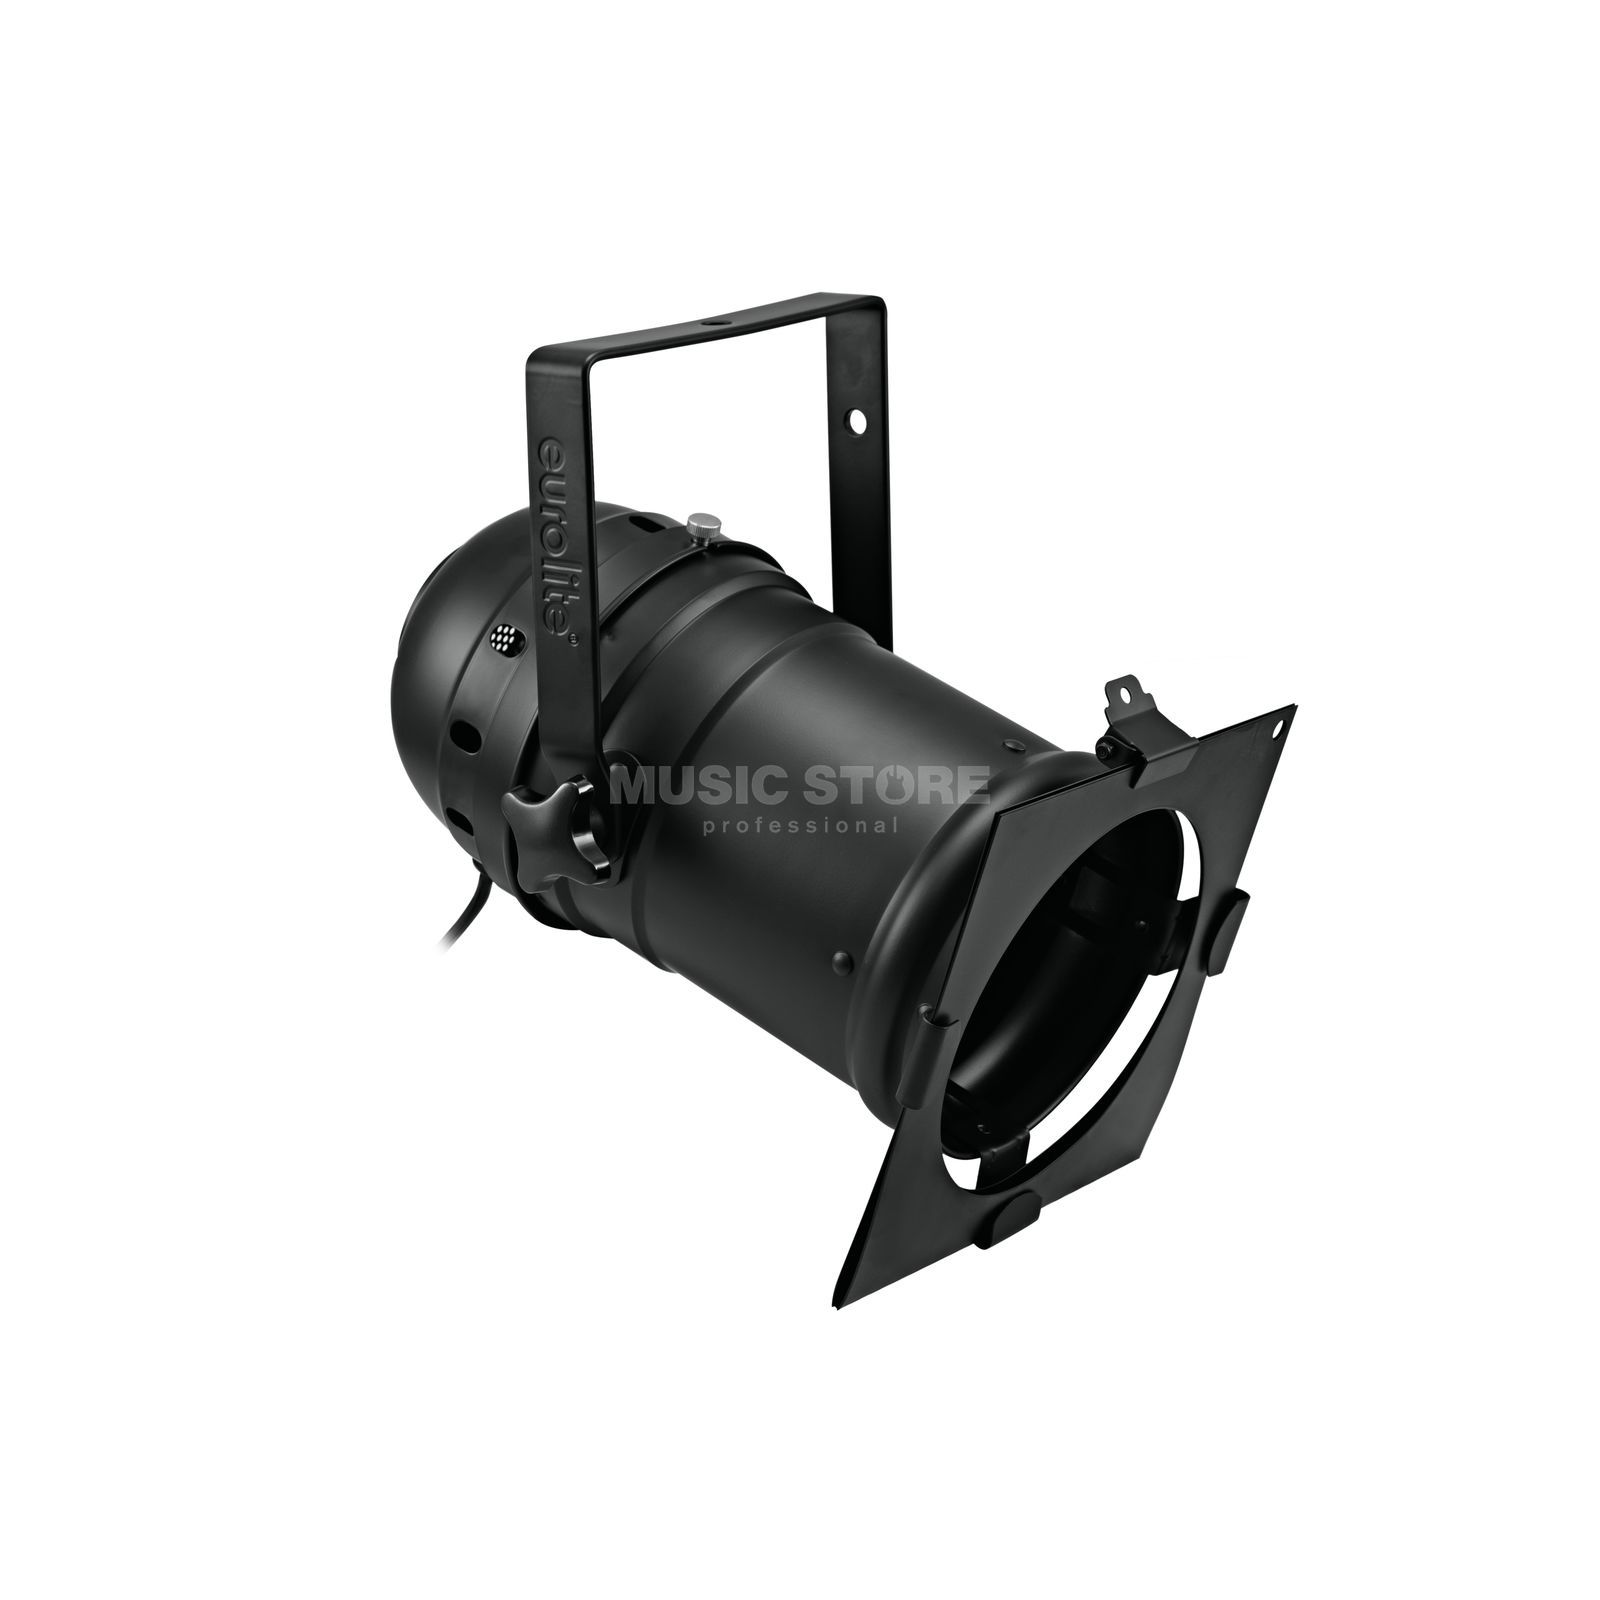 Eurolite PAR 56 Housing Long Black incl. Filter Frame Product Image